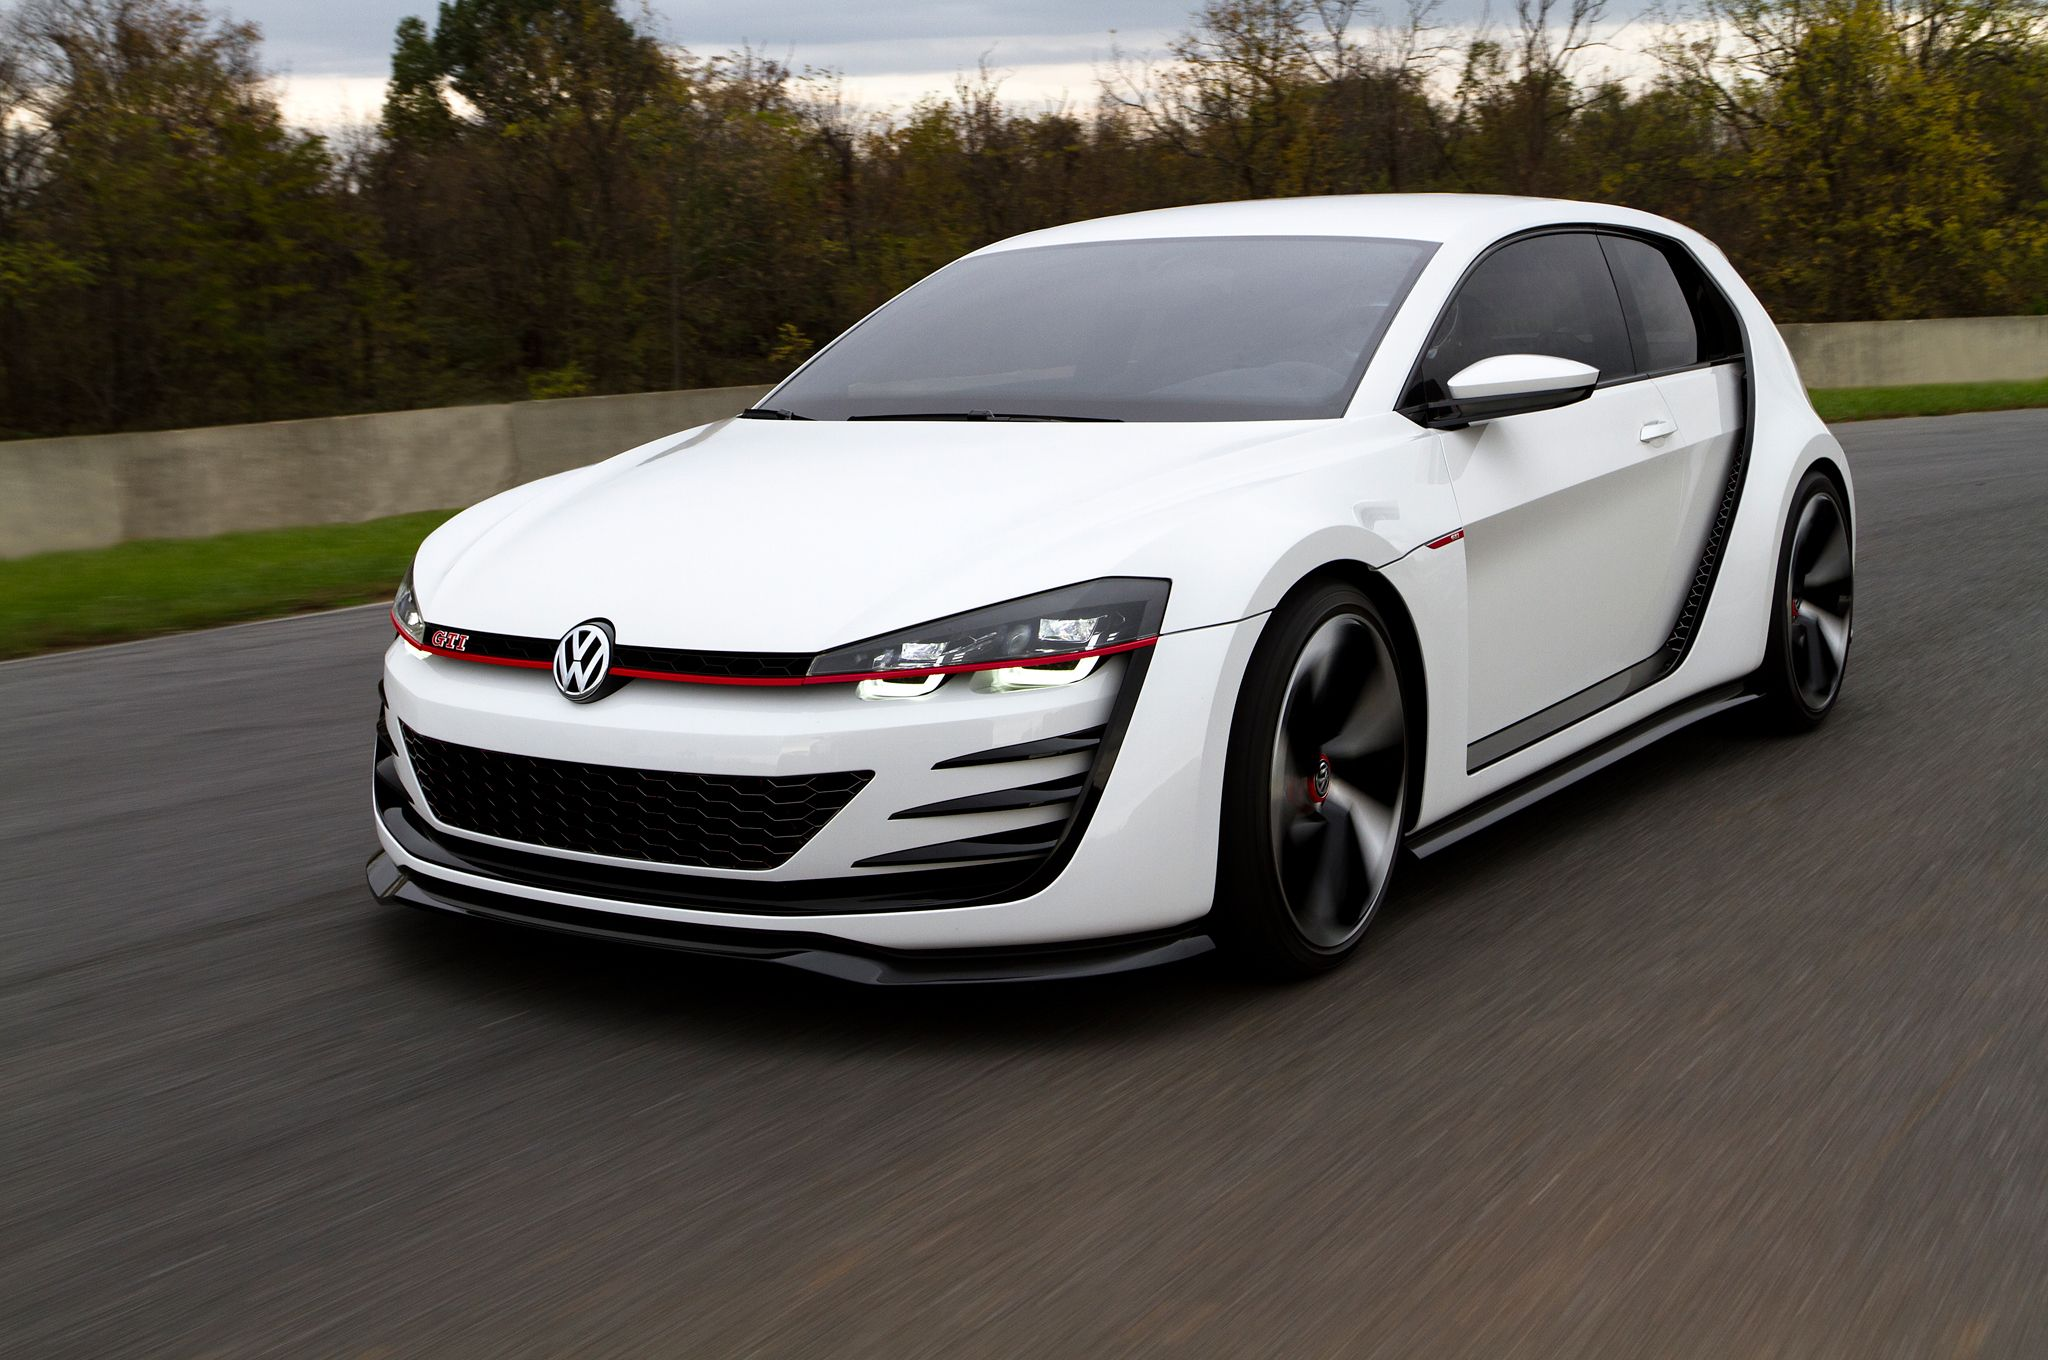 volkswagen design vision gti concept golf pinterest voiture volkswagen e belle voiture. Black Bedroom Furniture Sets. Home Design Ideas